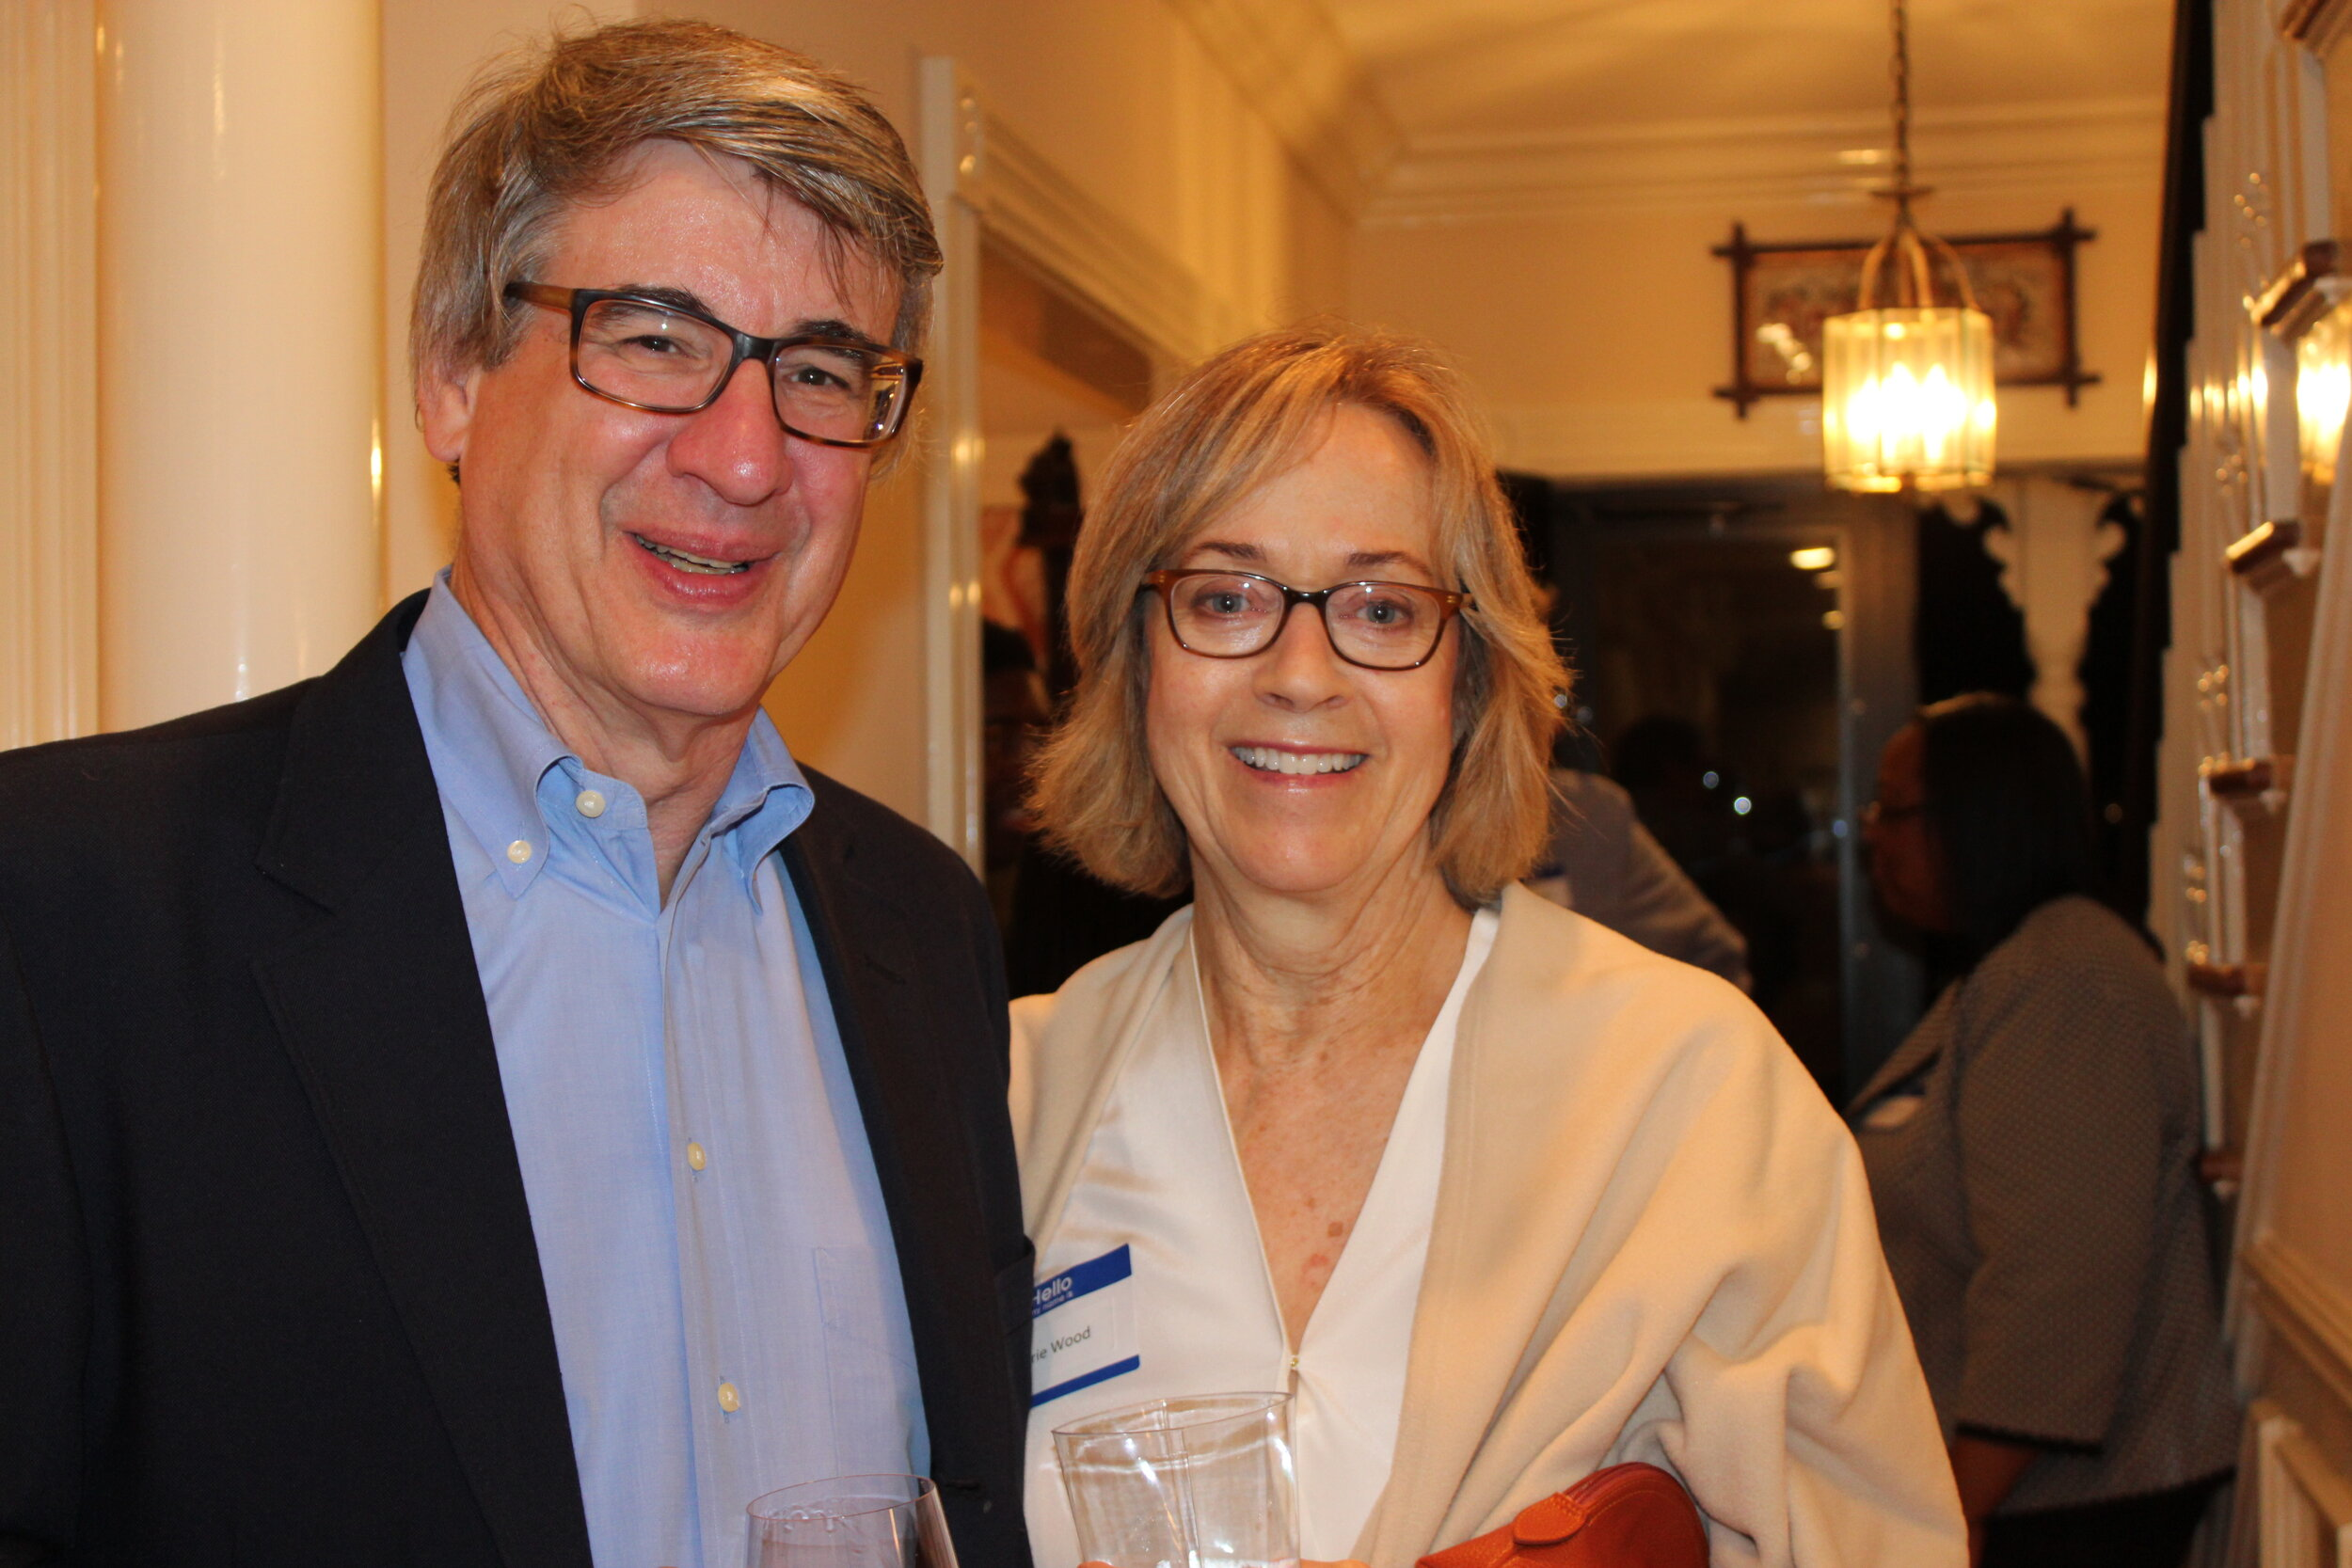 Longtime Carver advocates, Rich Baskin and Terrie Wood who is a member of the Connecticut House of Representatives representing Darien and Rowayton